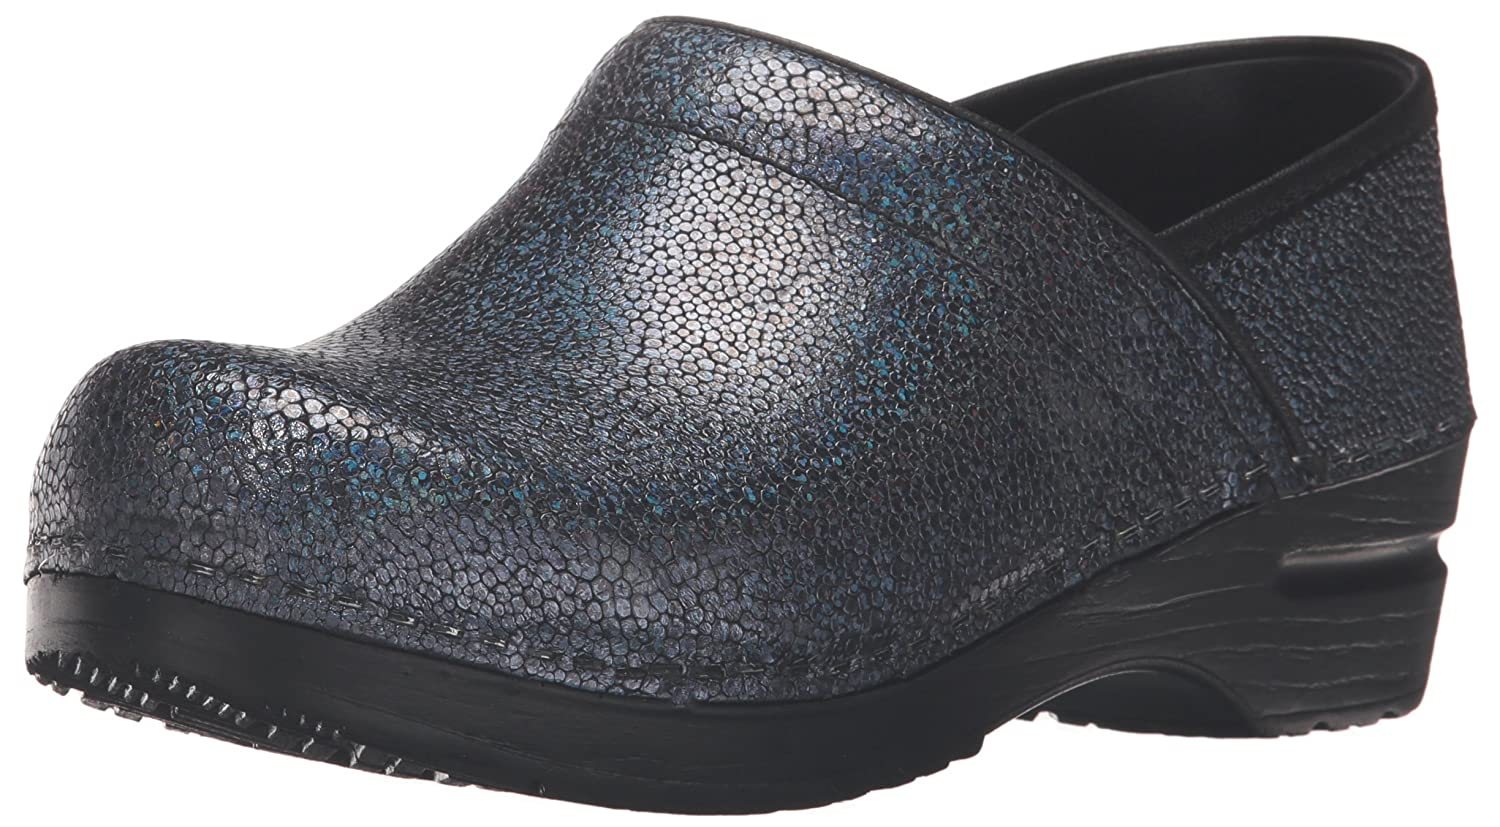 Sanita Women's Original Pro-Pebble Mule